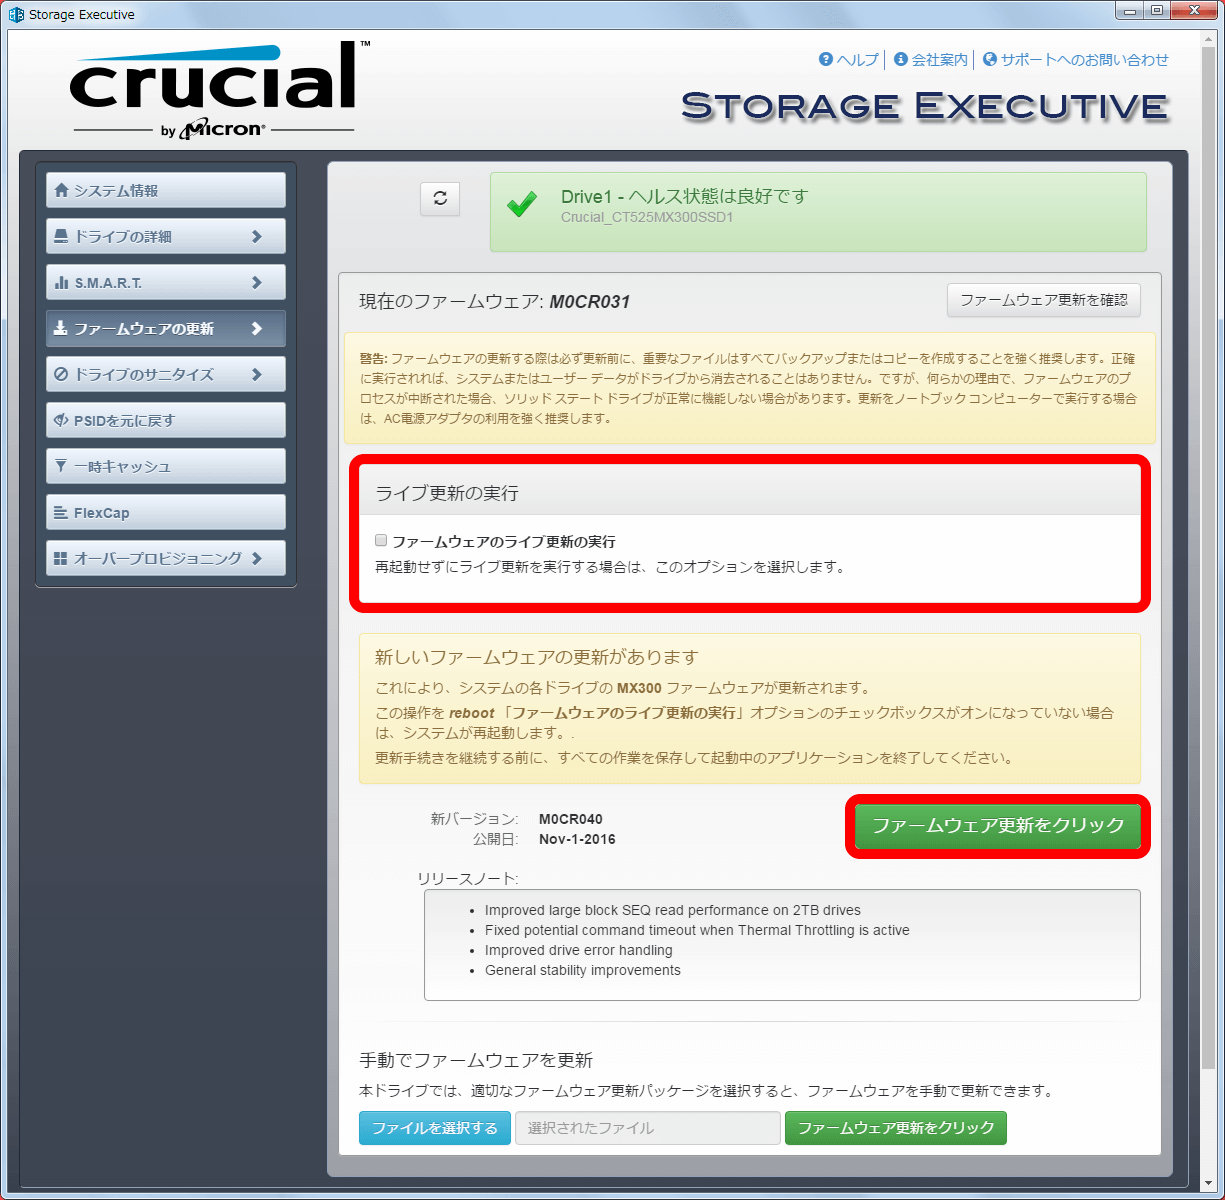 Crucial SSD 専用ソフトウェア Crucial Storage Executive で Crucial Micron SSD MX300 525GB 3D TLC NAND 3年保証 CT525MX300SSD1 ファームウェア M0CR031 から M0CR040 更新